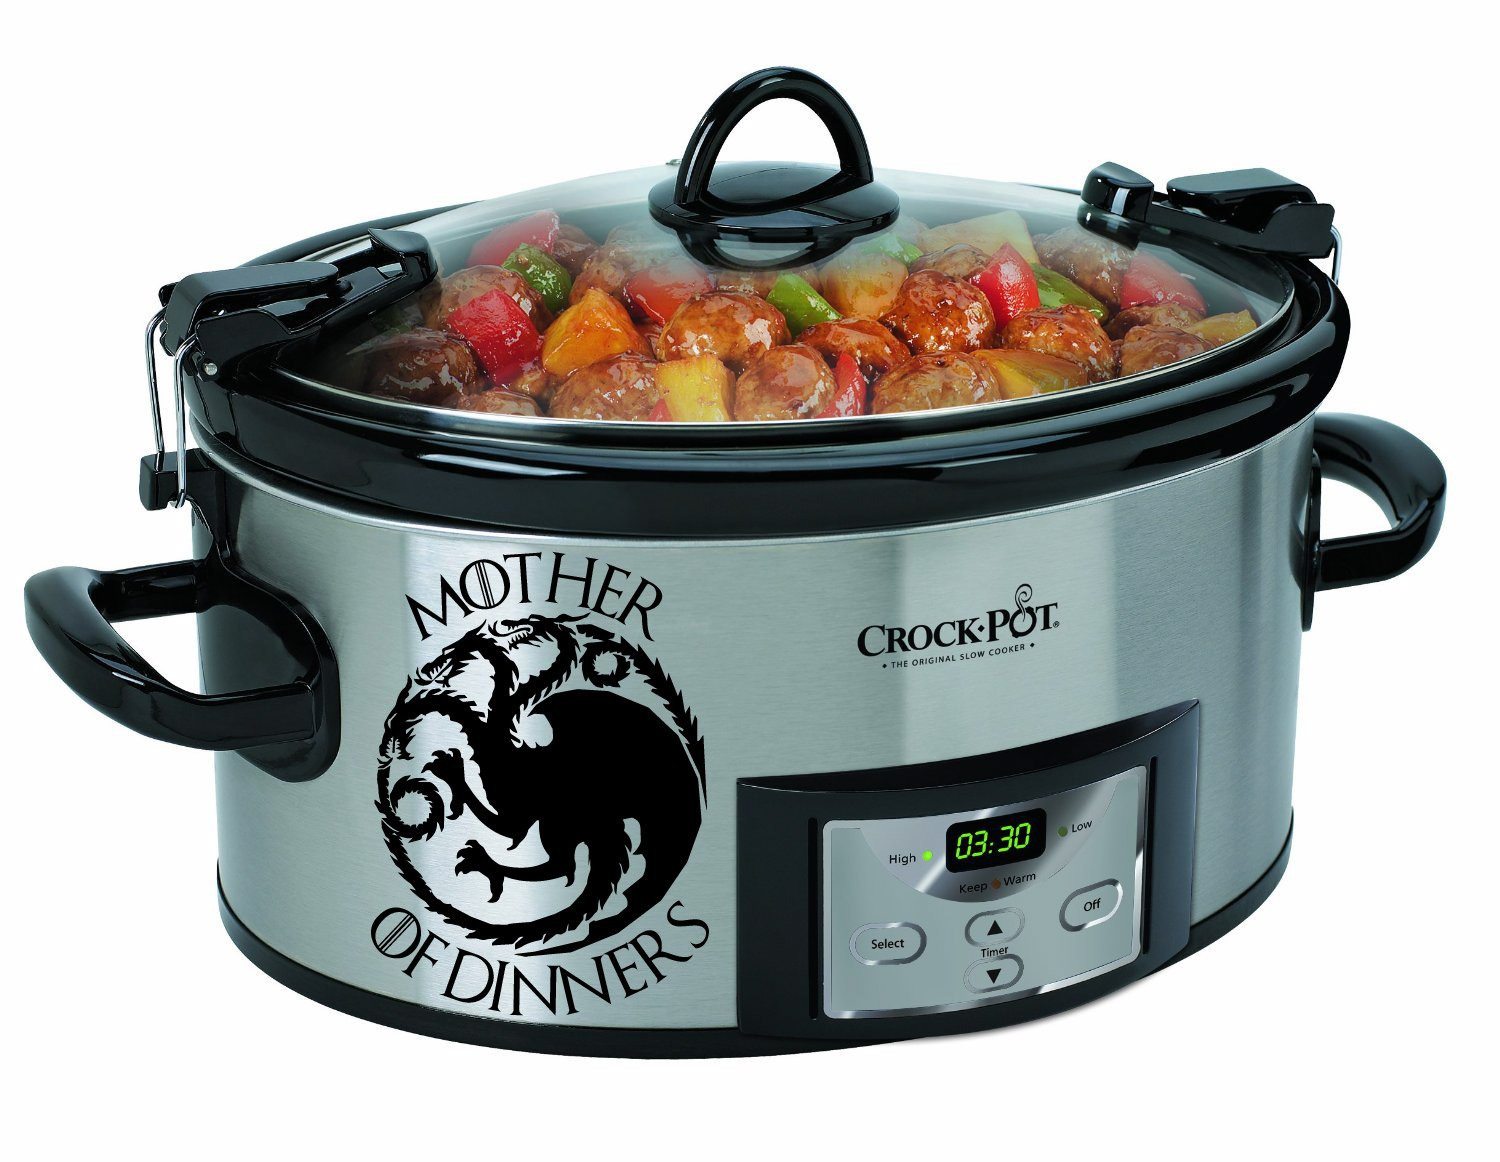 Mother of Dinners Crock Pot Game of Thrones Inspired Vinyl Decal Sticker